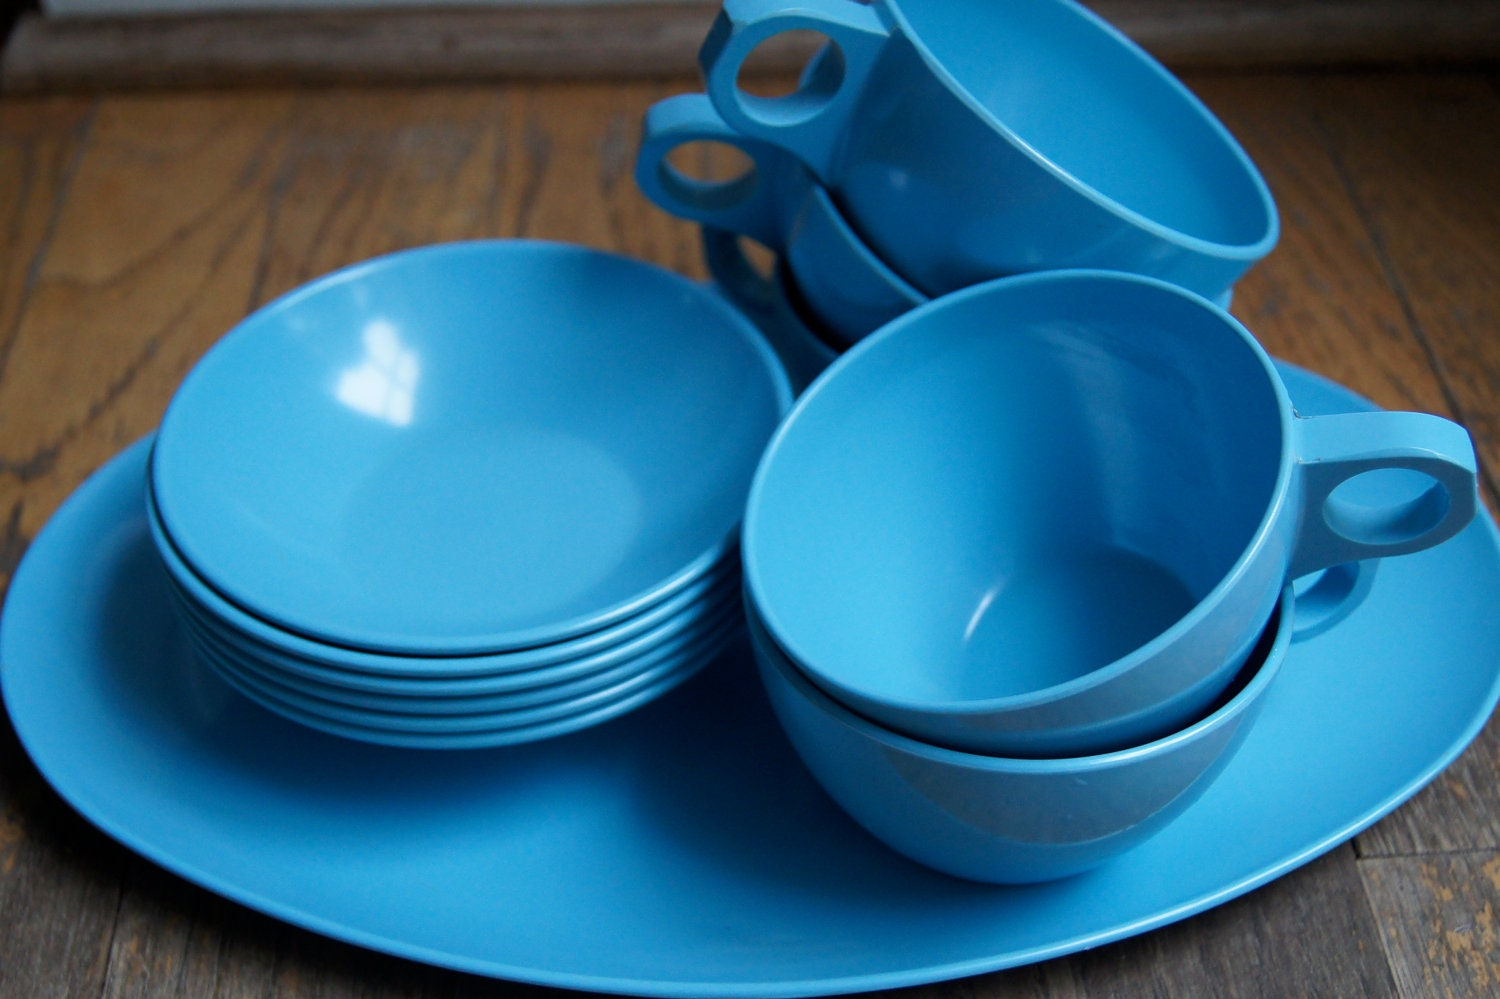 Blue melmac, Blue melamine, Blue Allied Chemical dish set, Glamping dish set